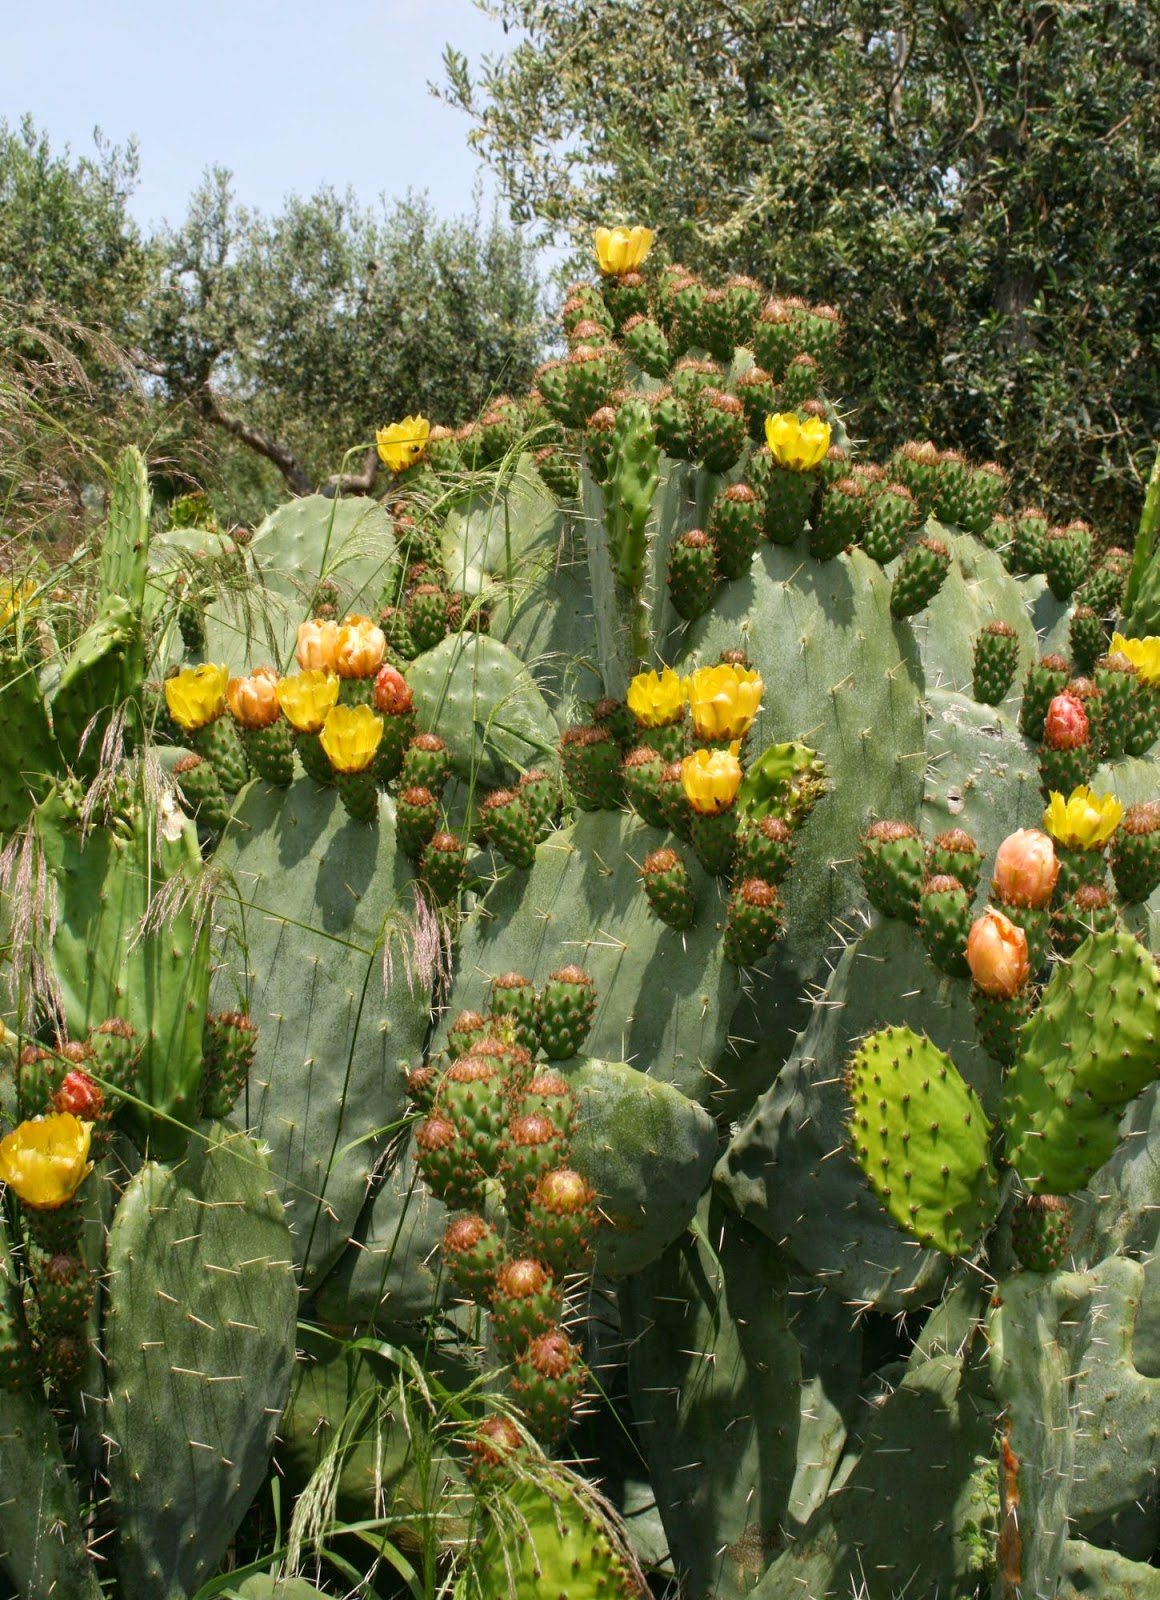 Prickly pear cactus opuntia ficus indica overview - Advantages of cactus plant ...